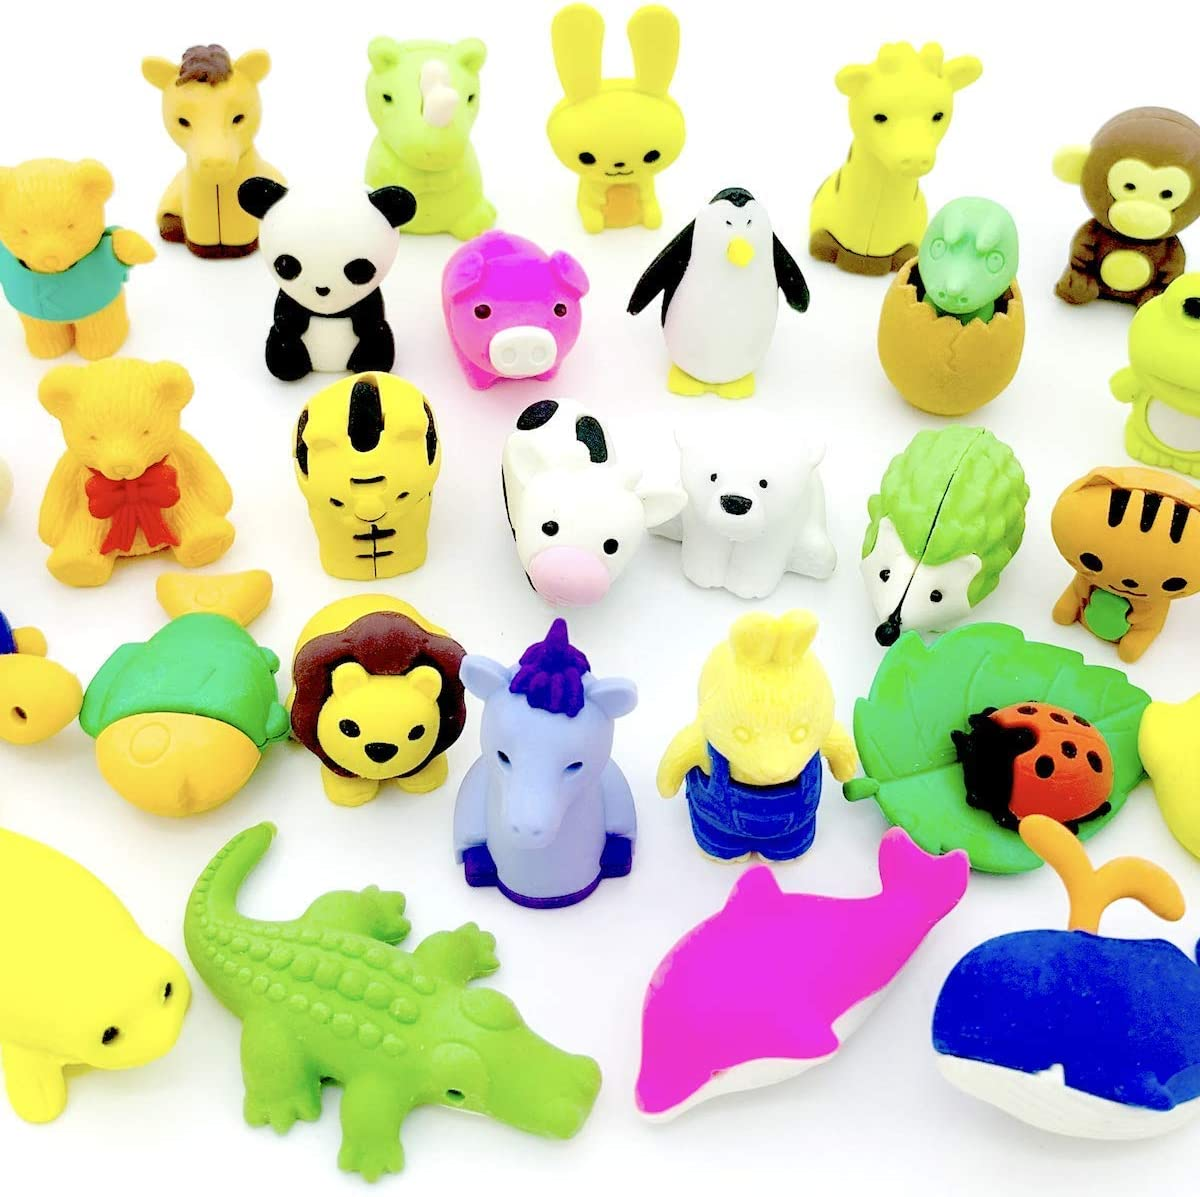 OHill Animal Erasers, Pack of 62 3D Animal Pencil Erasers Puzzle Erasers Kid Erasers for Party Favors Games Prizes Carnivals and Classroom Rewards